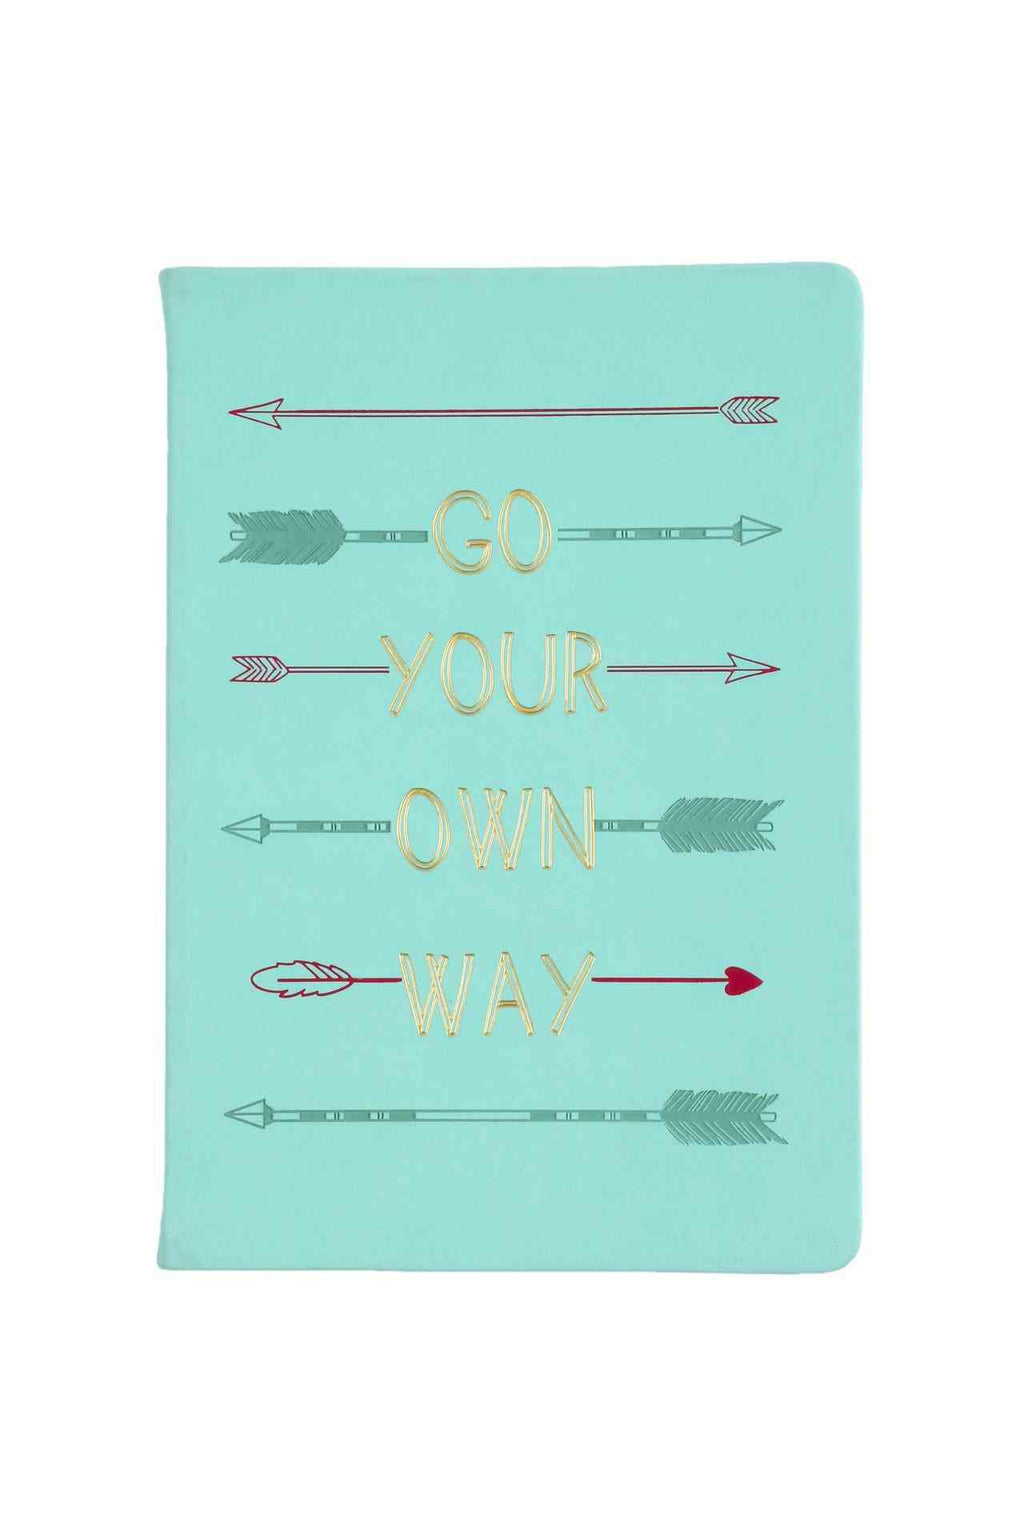 go your own way teal journal with gold writing and arrows